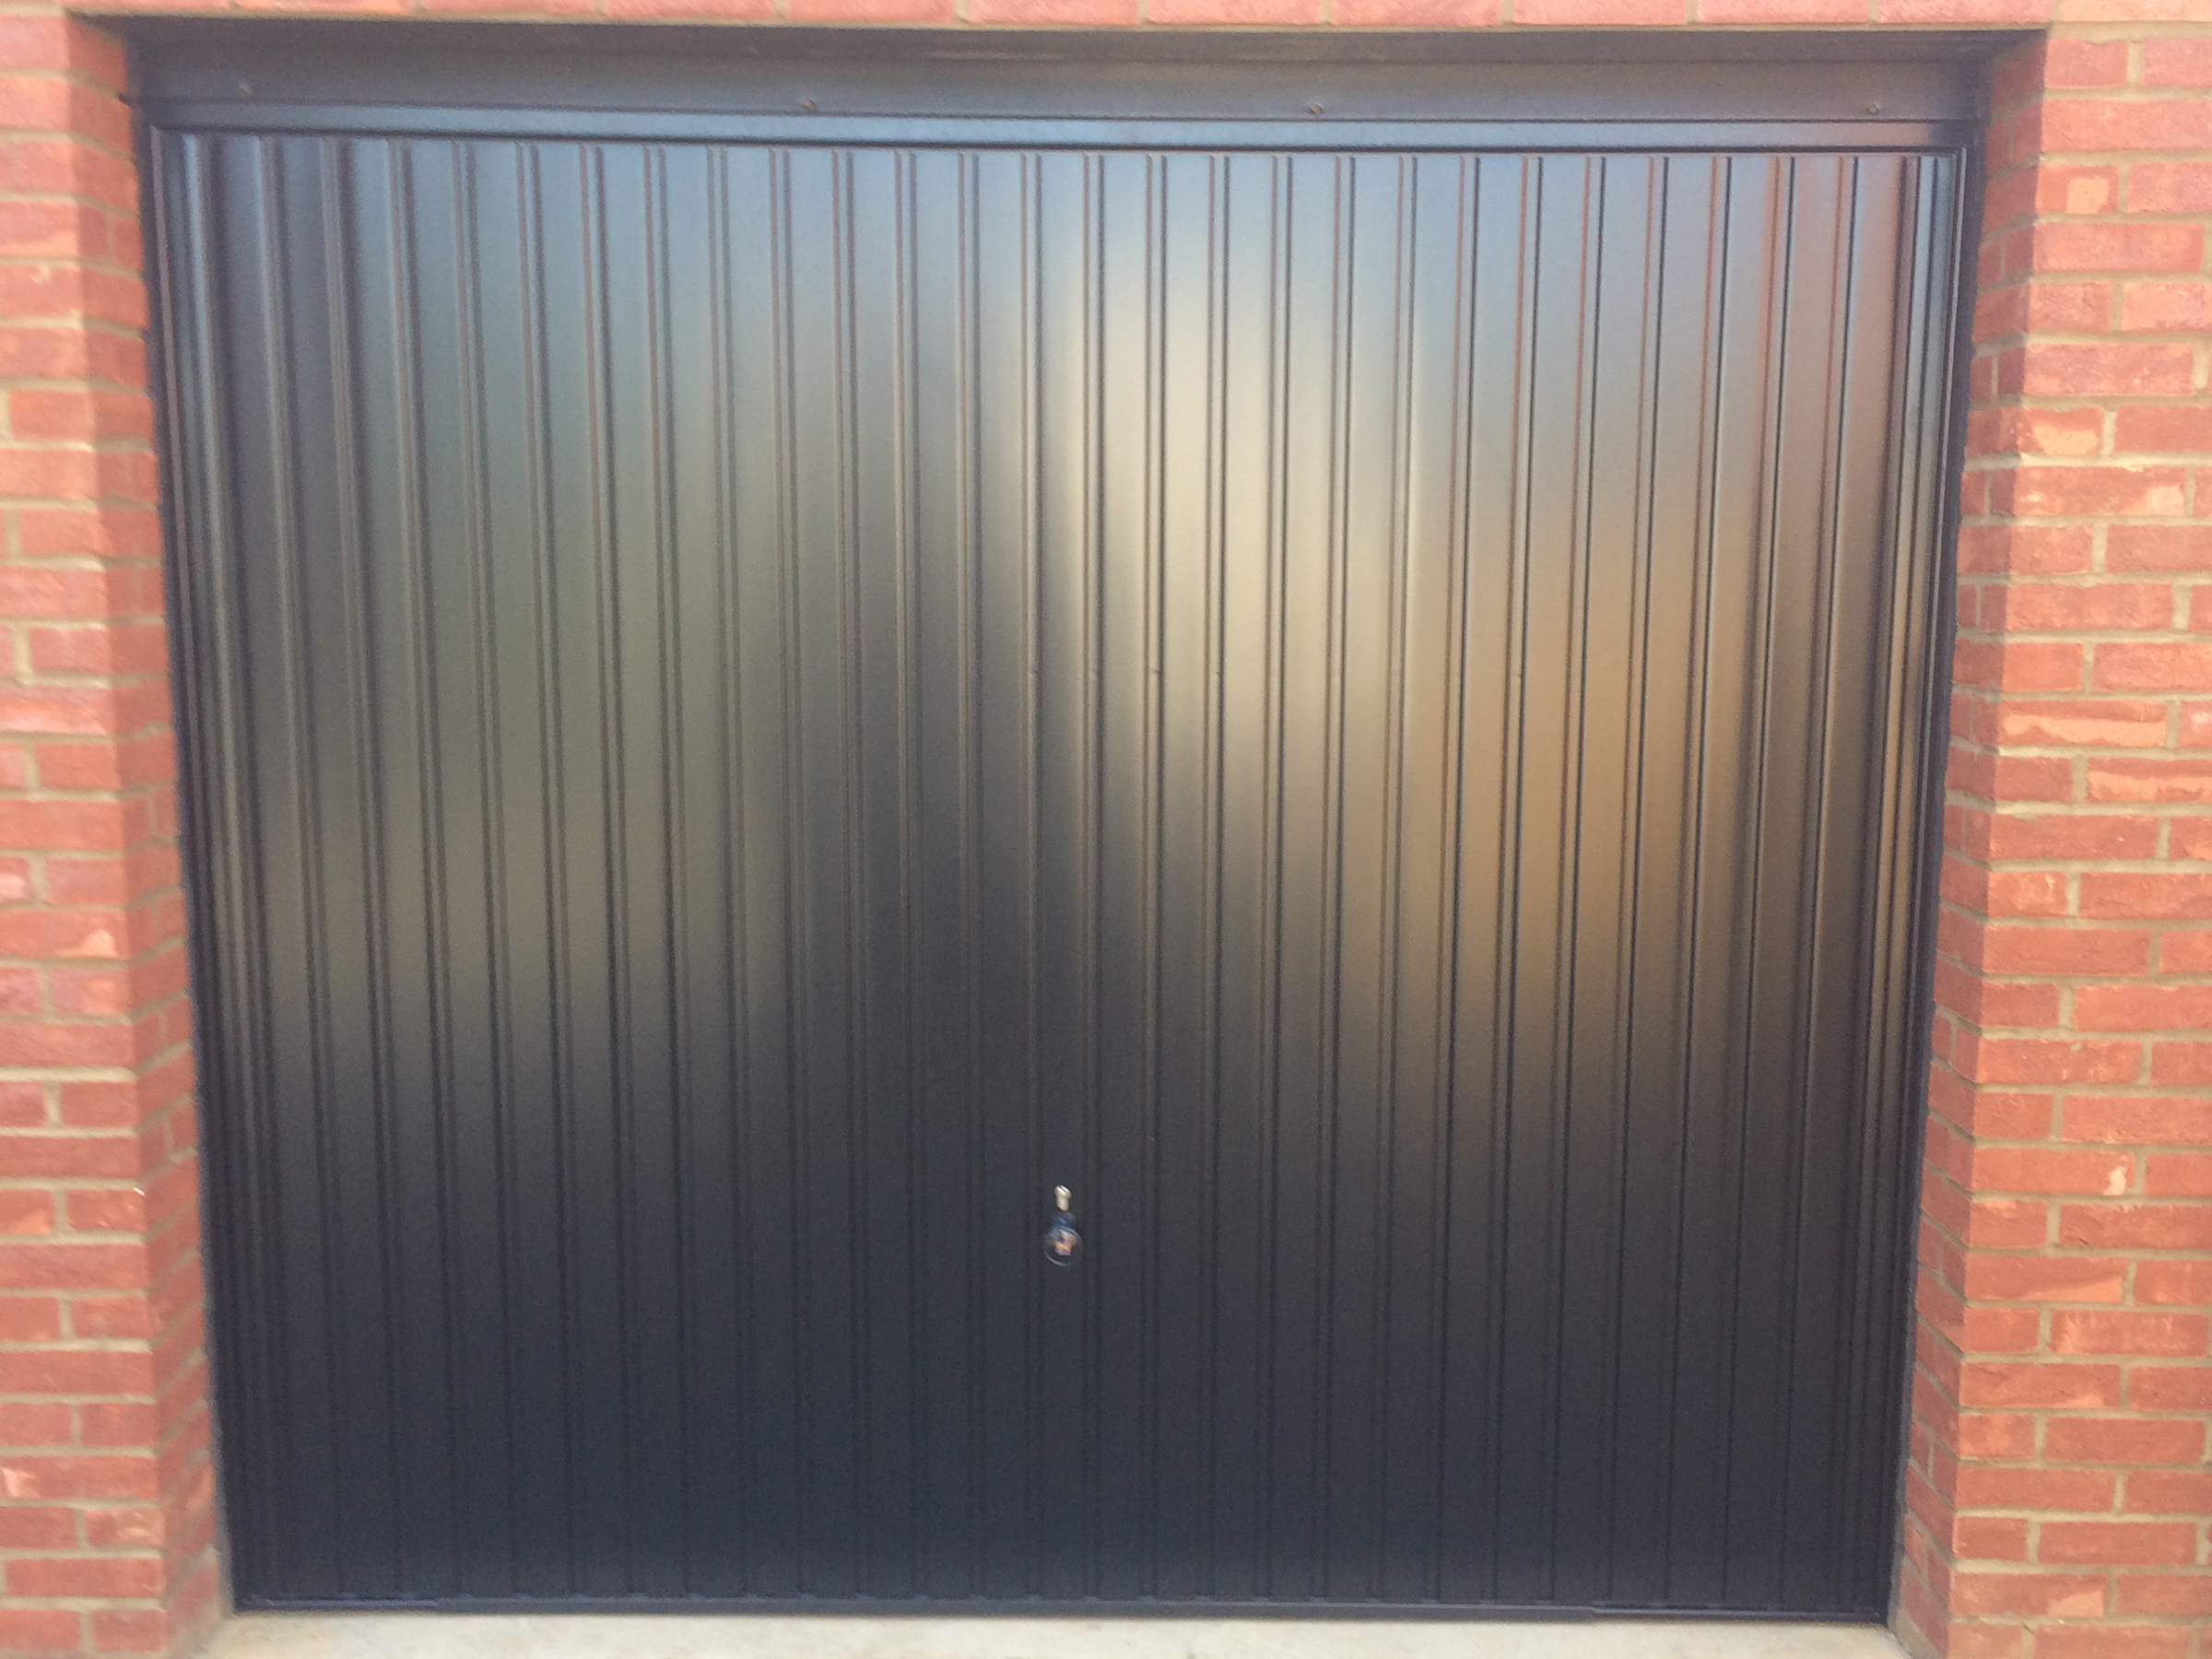 Hormann garage doors sectional garage doors online uk affix the steel sub frame to the structural opening using the set of steel brackets supplied 3 down each side of the frame one at the head rubansaba